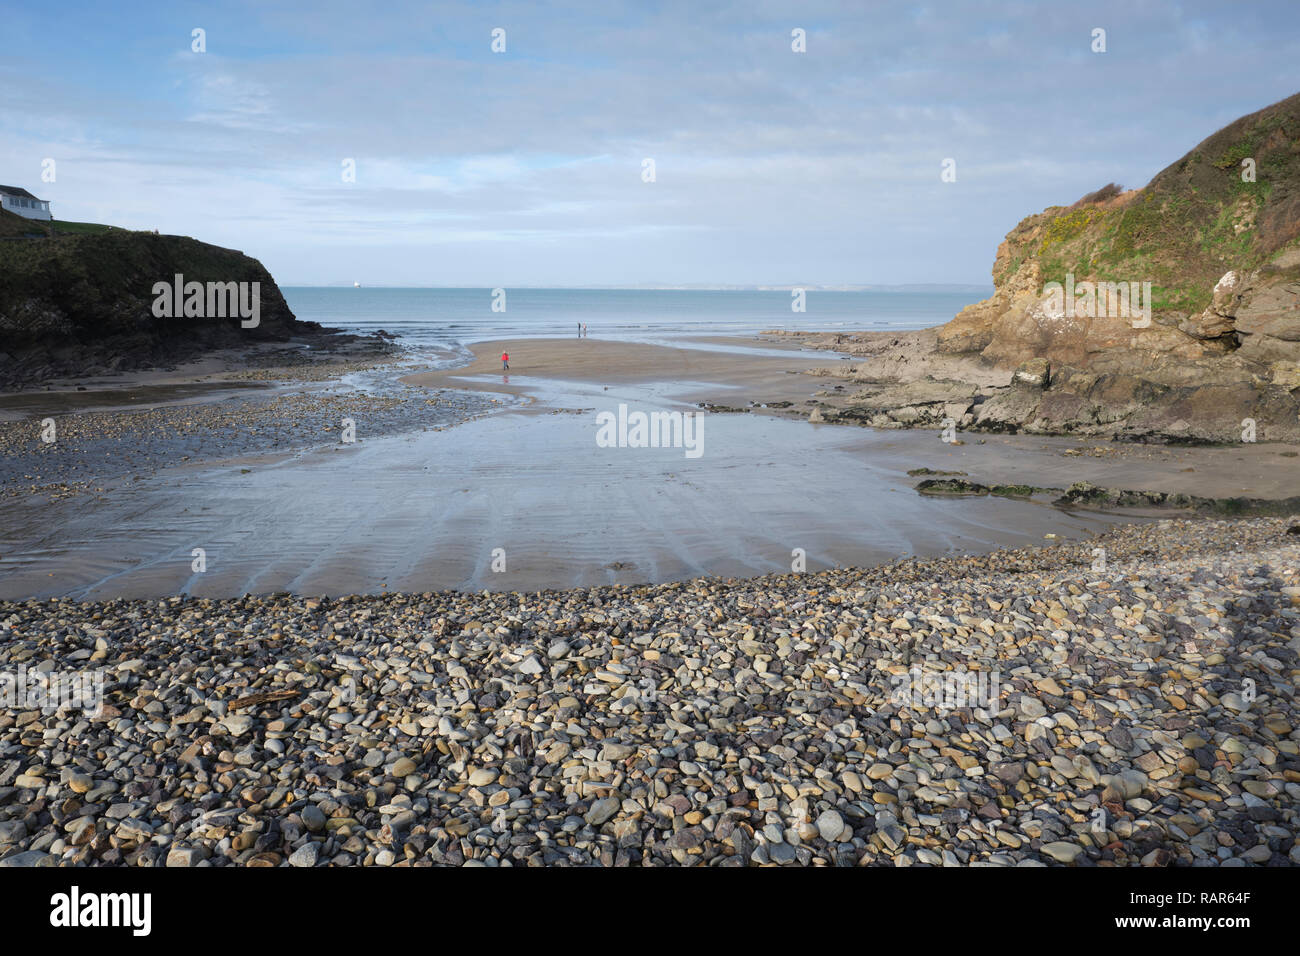 Low tide at Little Haven beach in Winter. - Stock Image